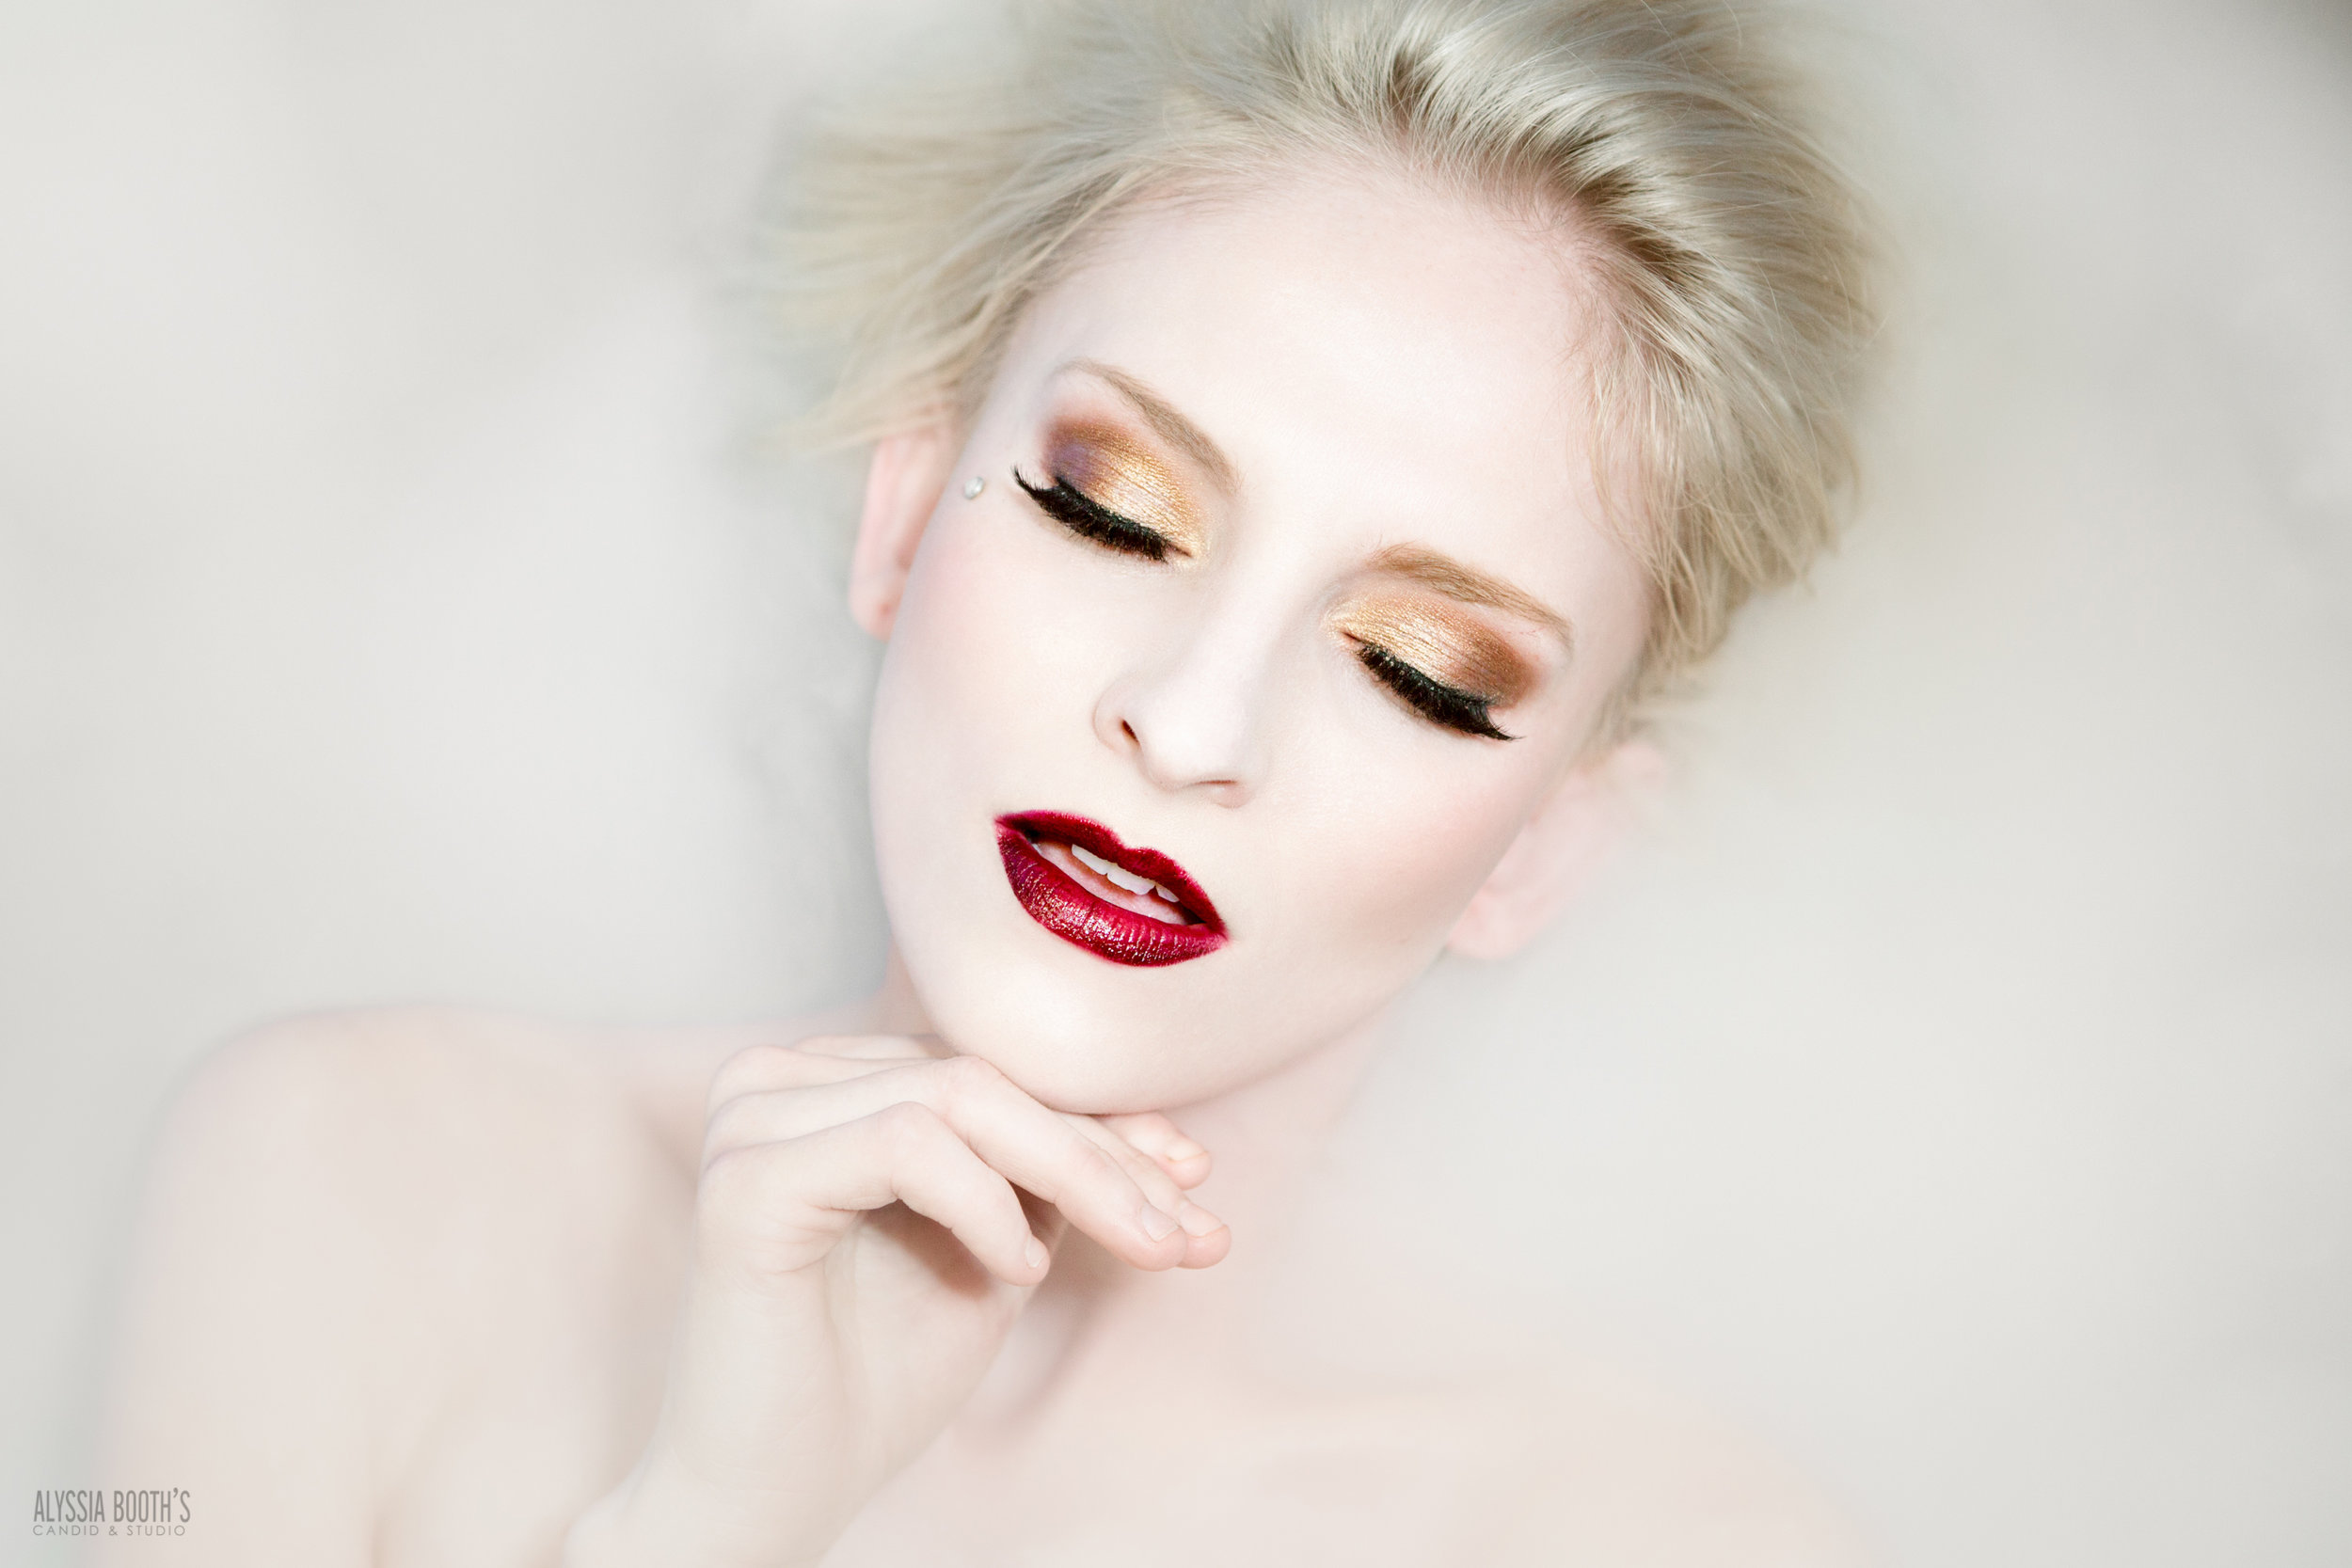 Dry Ice Photoshoot | Makeup test | Alyssia Booth's Candid & Studio | Michigan Photographer